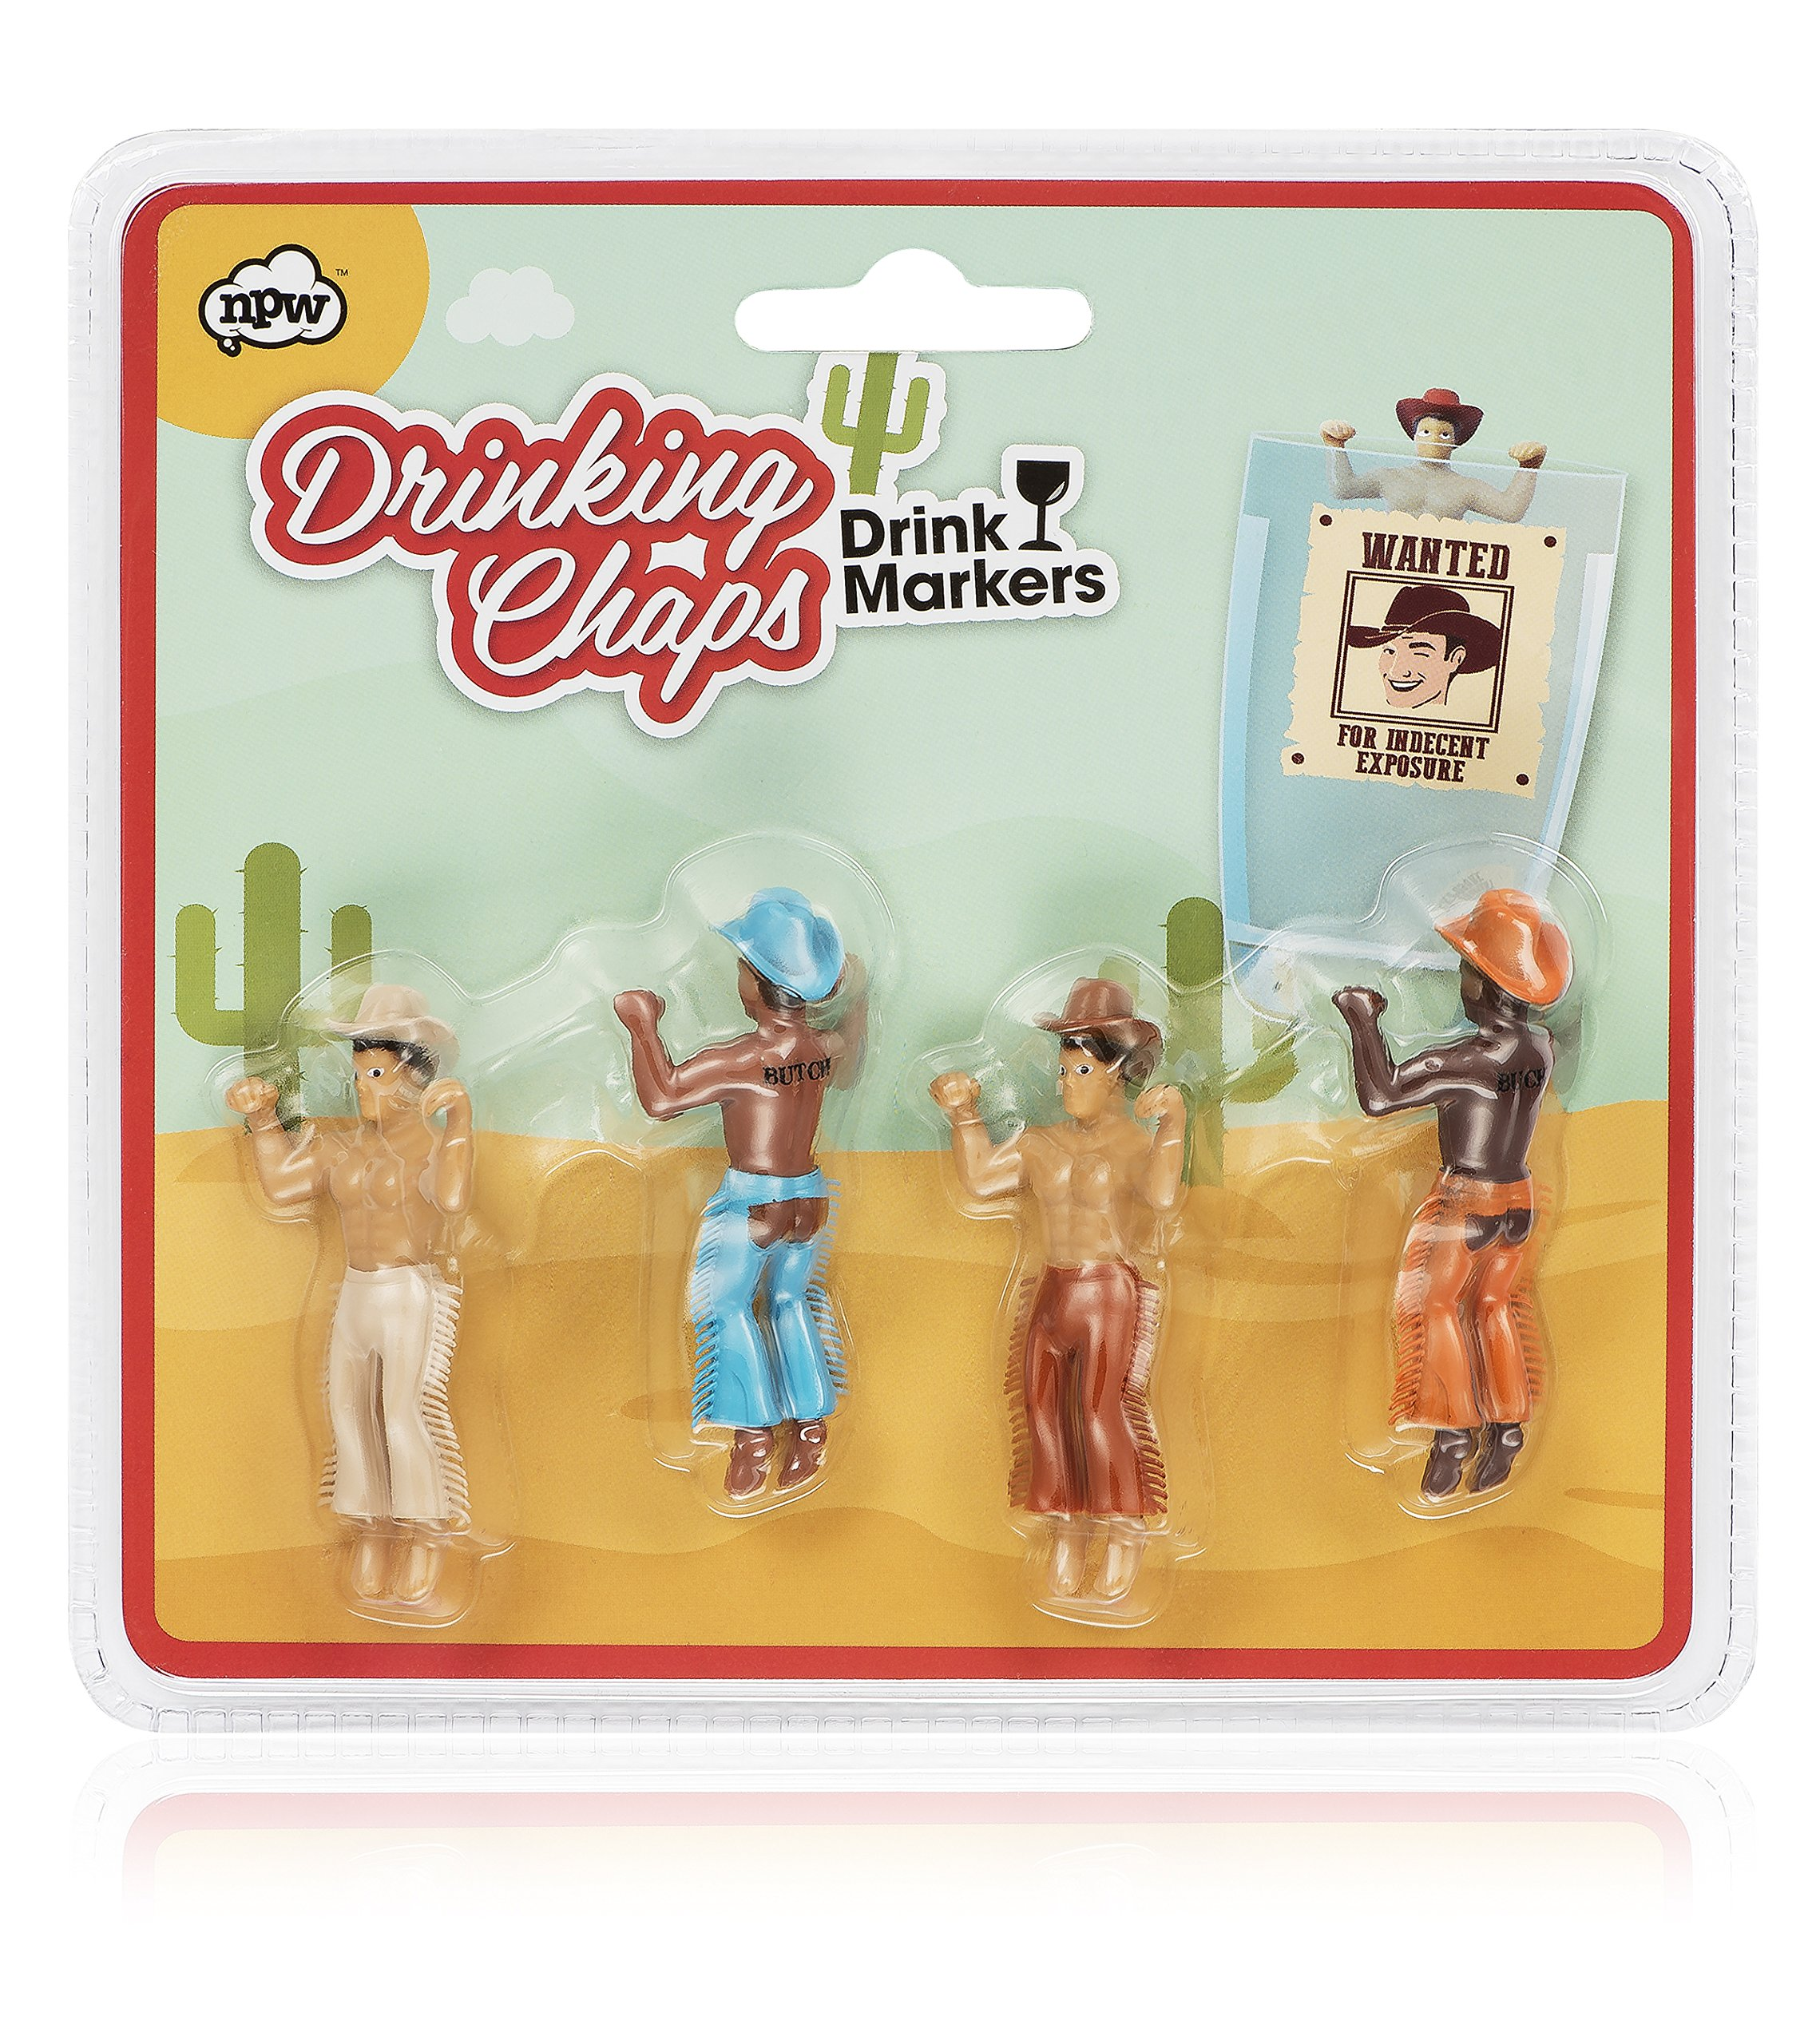 NPW Drinking Buddies Cocktail/Wine Glass Markers, 4-Count, Drinking Chaps Cowboy Buddies by NPW (Image #1)